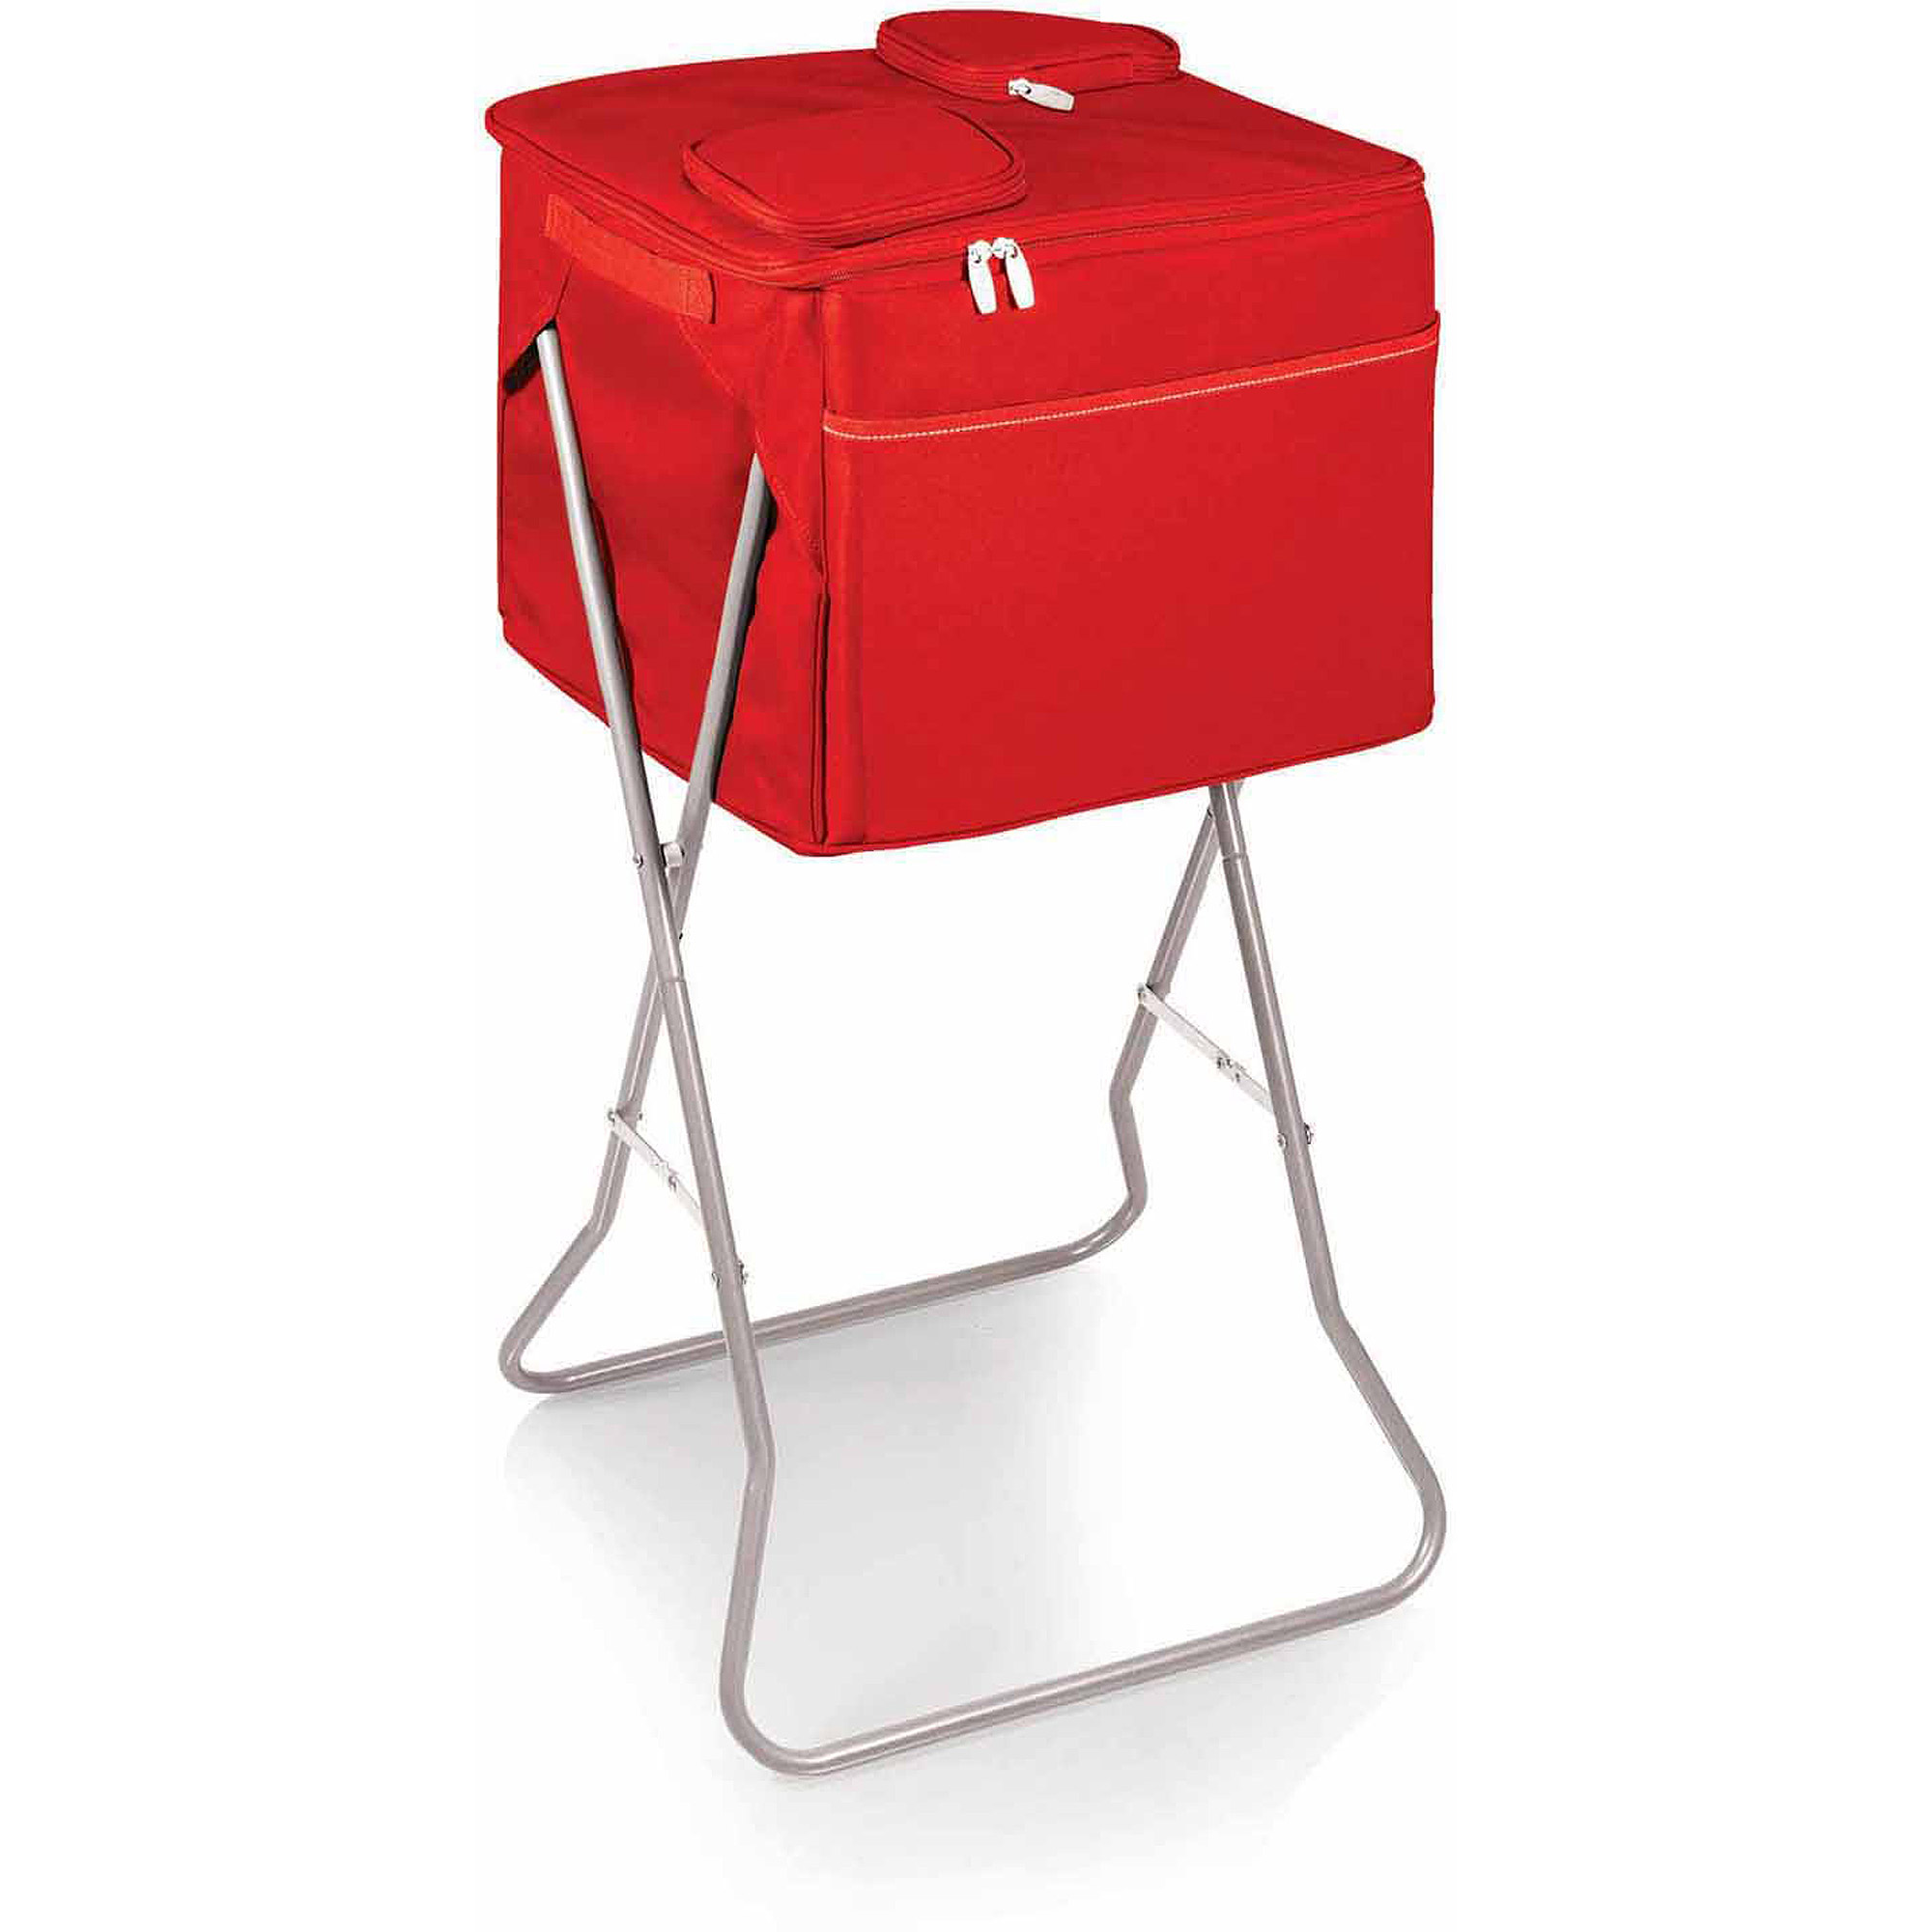 Picnic Time Party Cube Portable Cooler